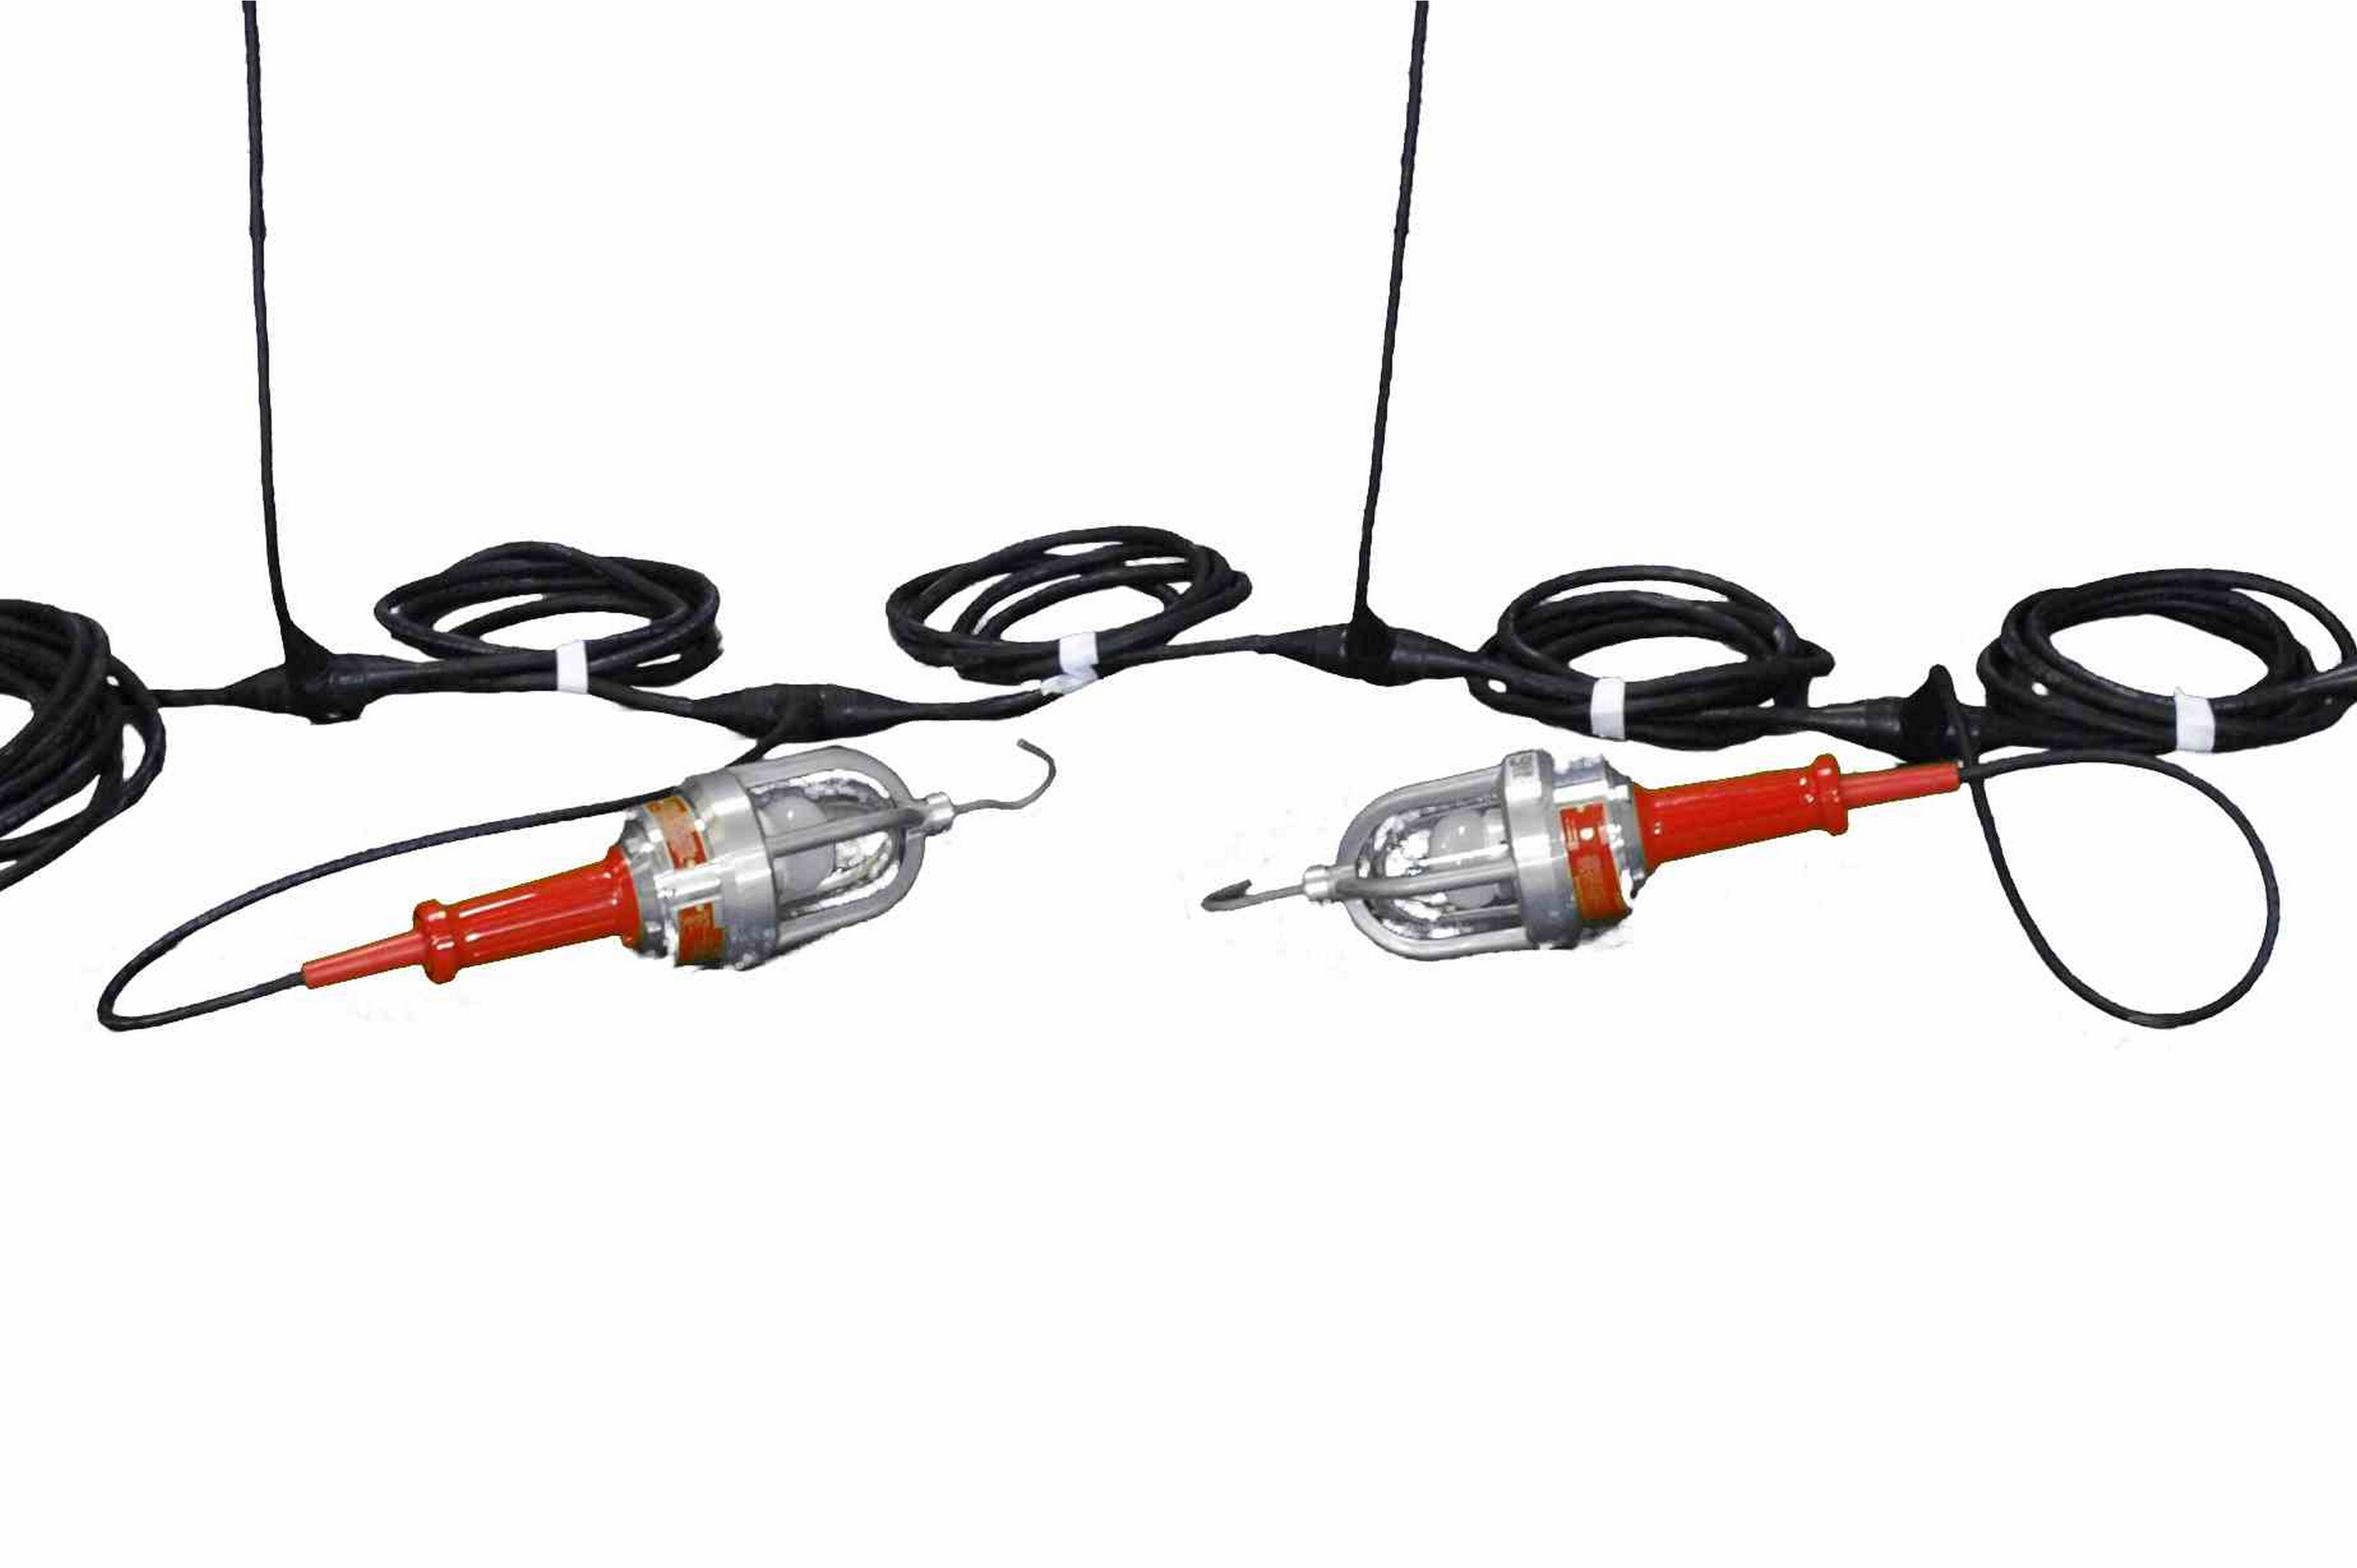 Explosion Proof String Lights